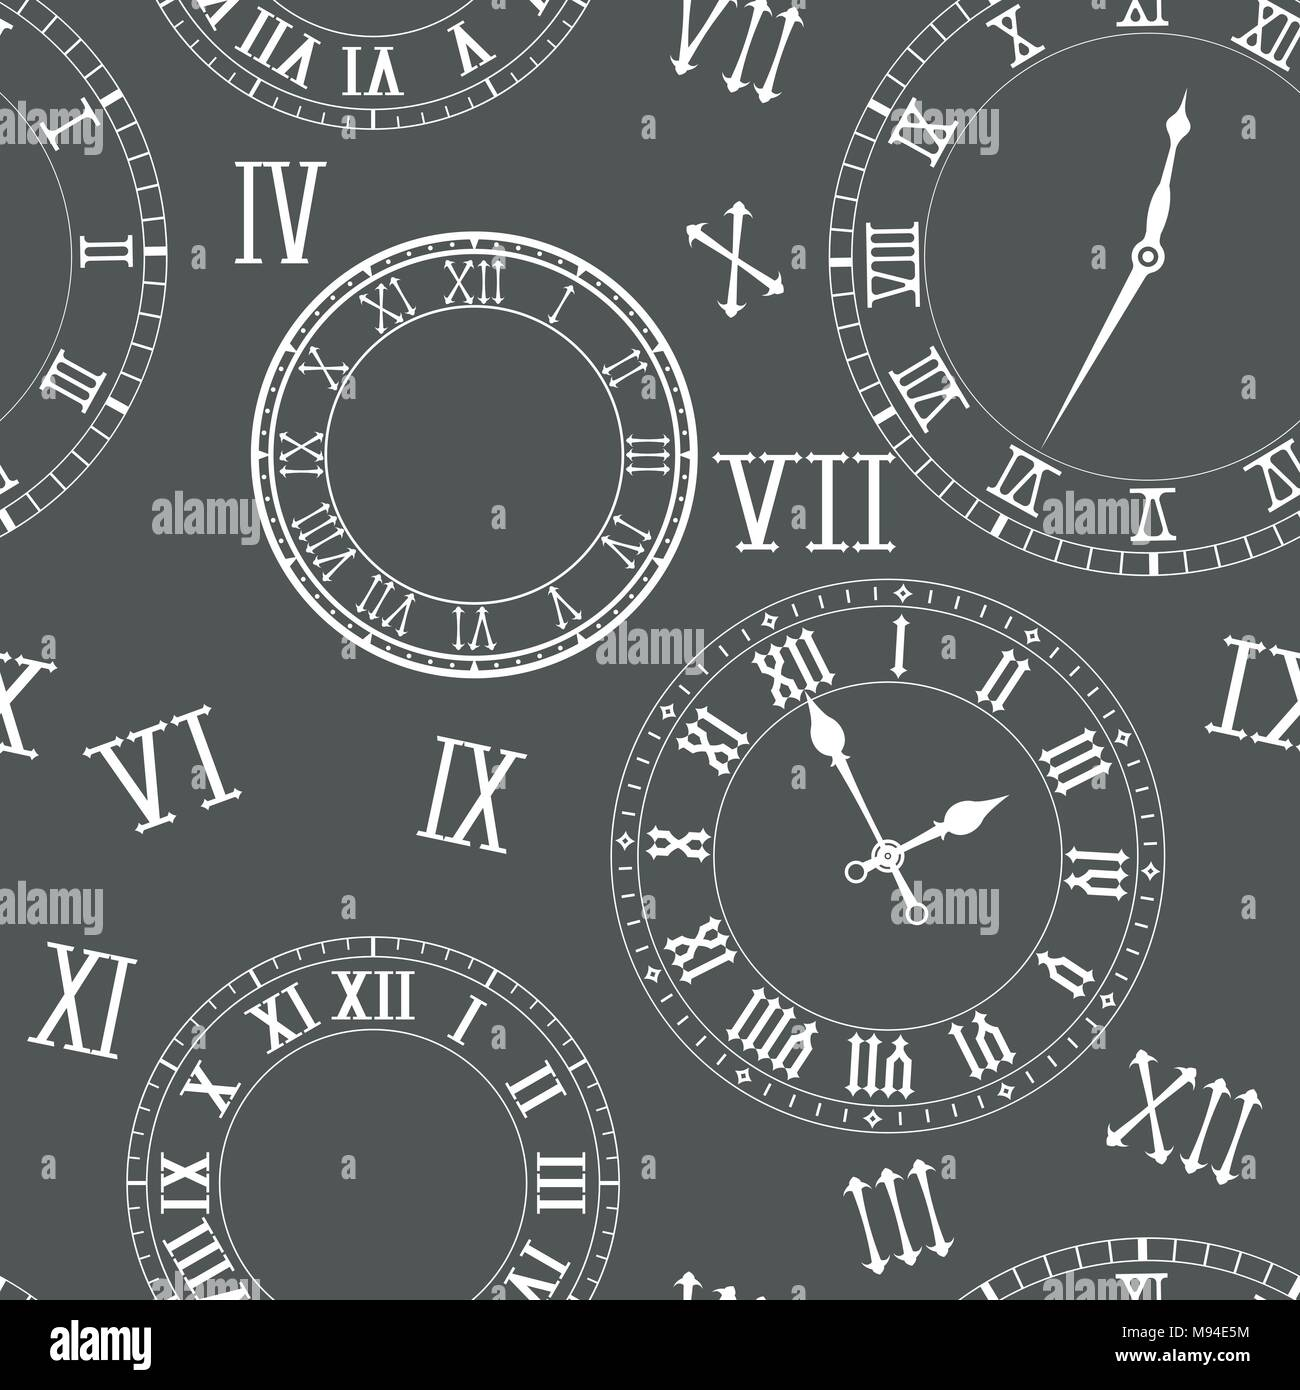 Time seamless pattern. Clocks, clock faces, roman numerals - Stock Image